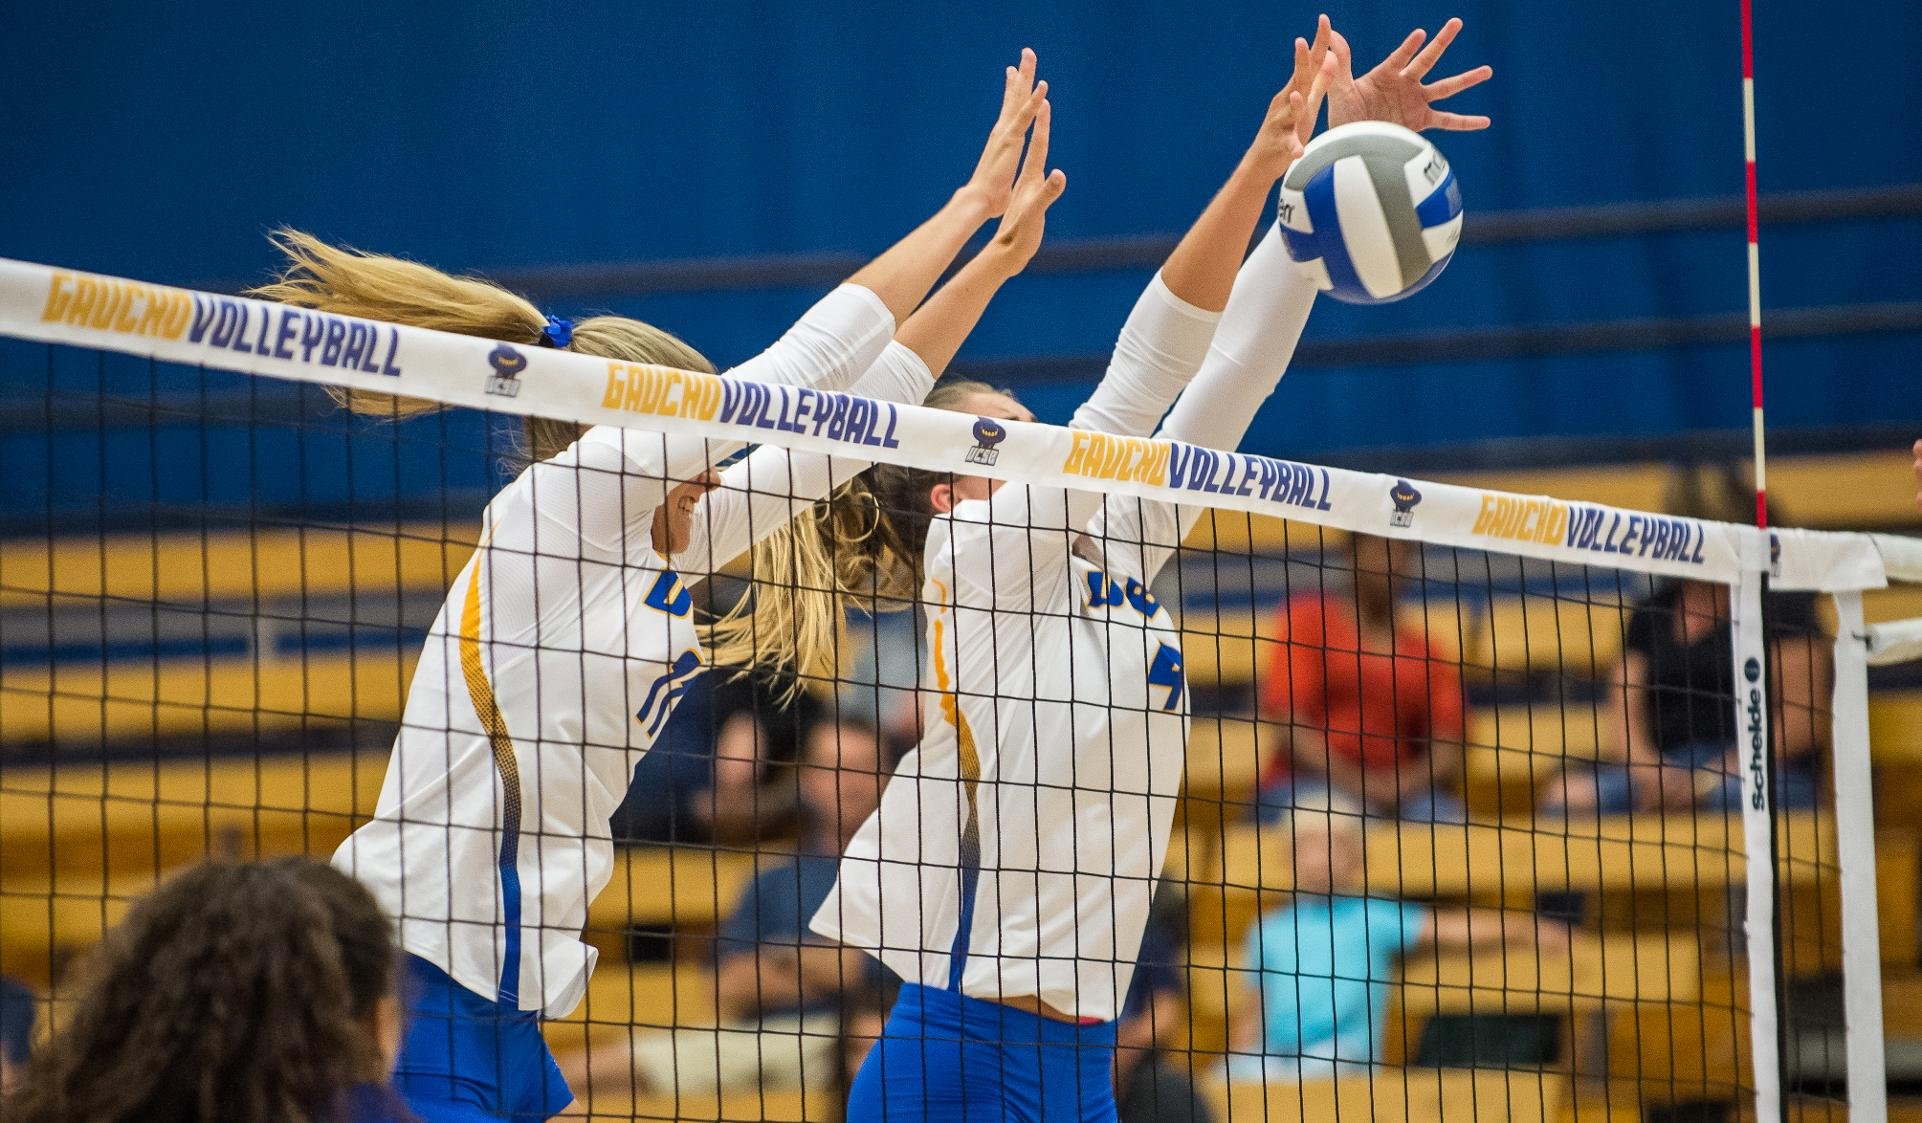 UCSB Falls 3-0 to UC Irvine In Season Finale